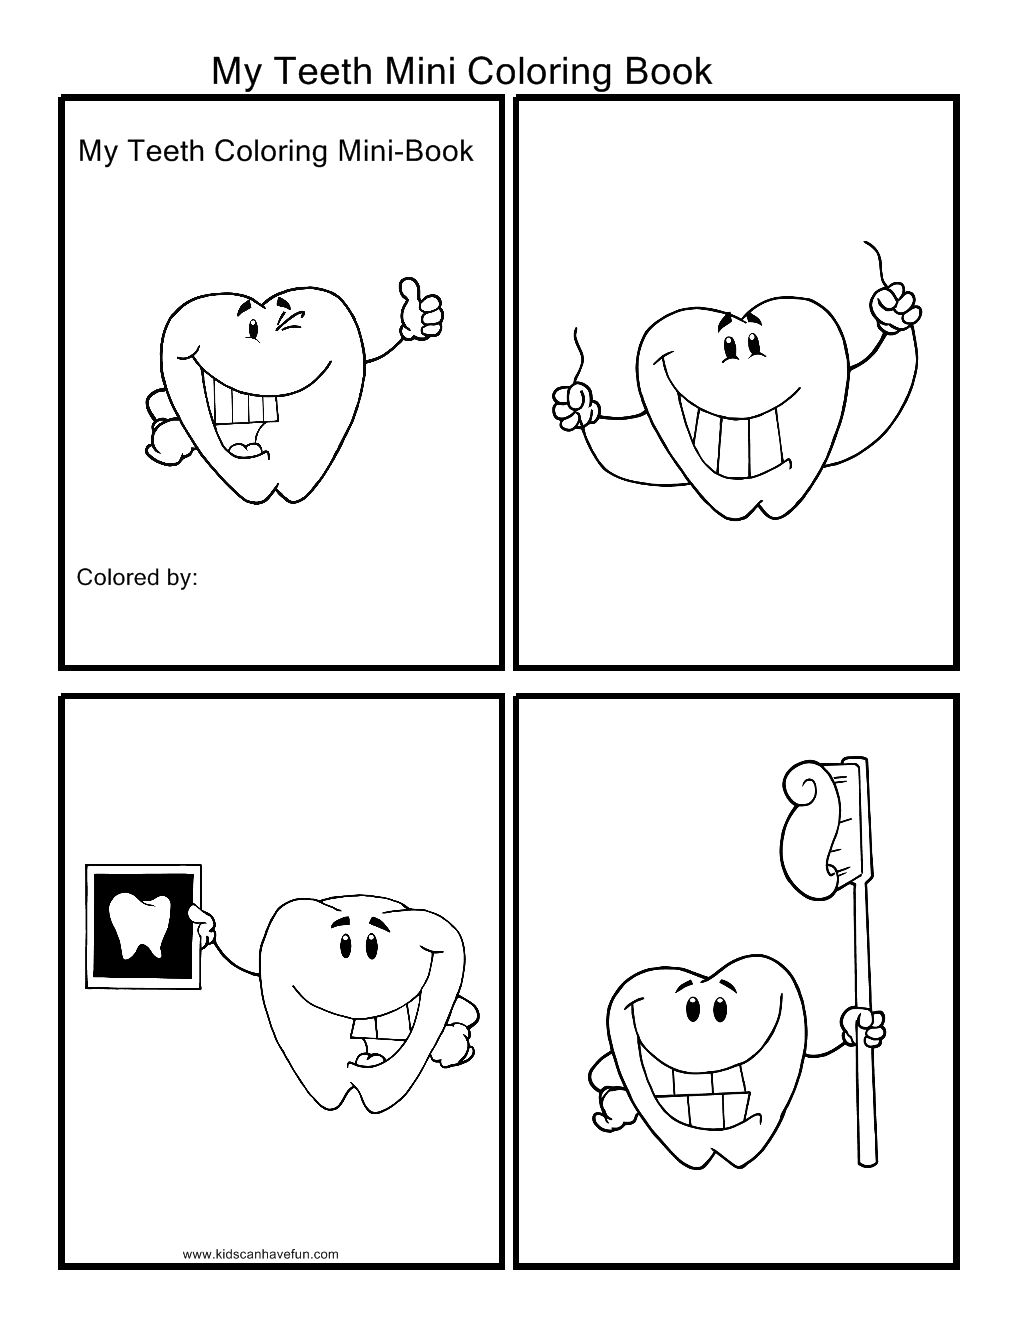 My Teeth Coloring Book About Me Activities Preschool Projects Preschool Books